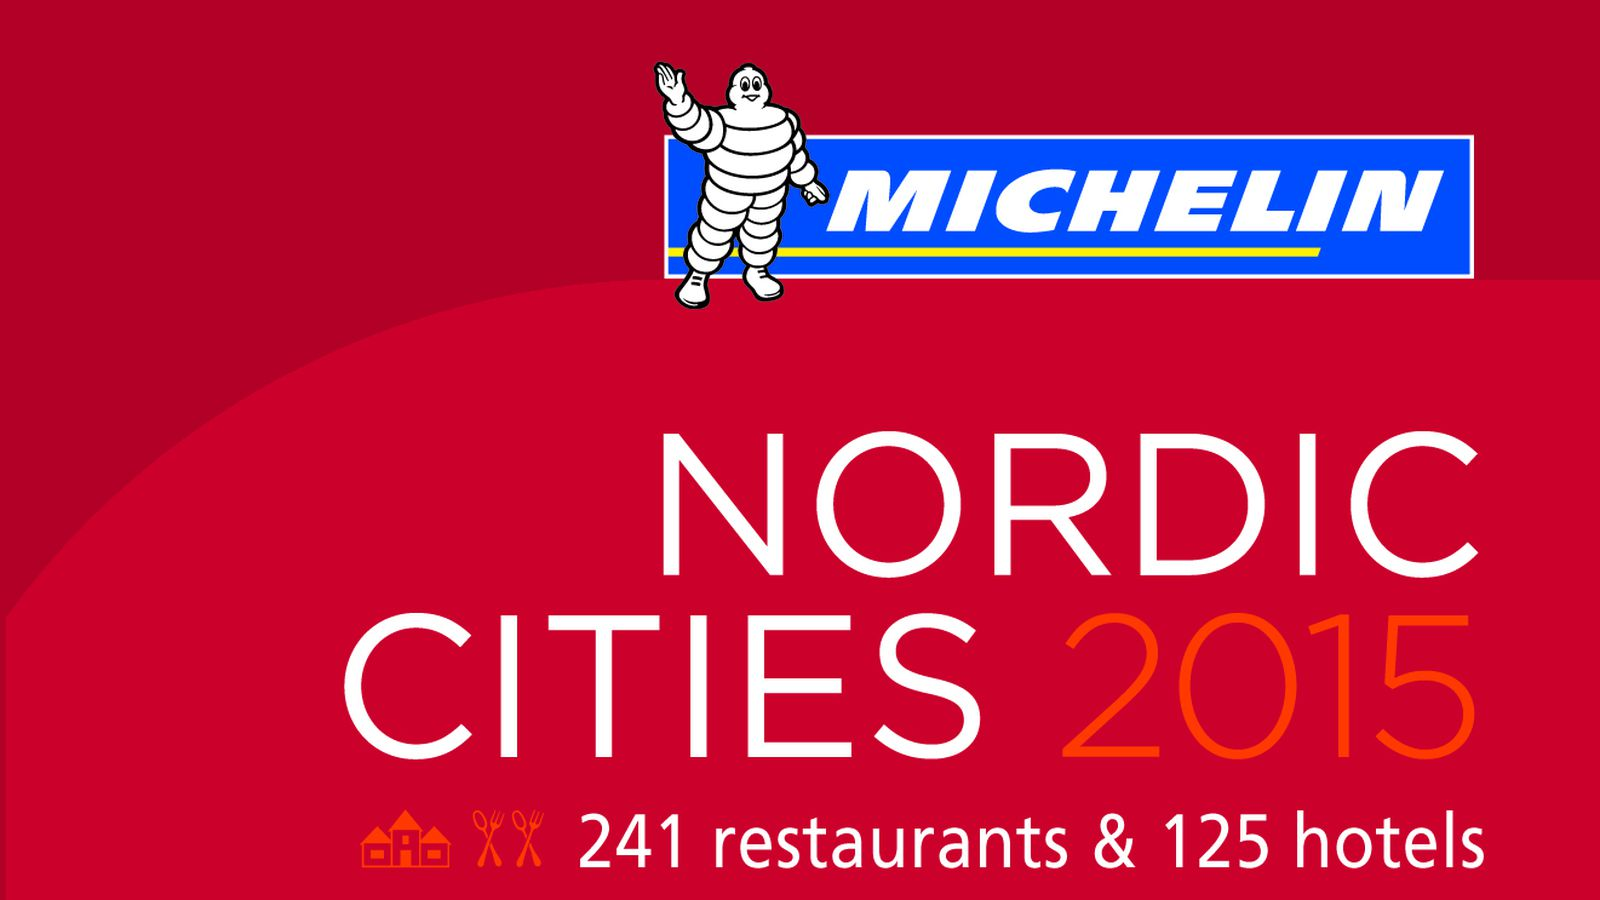 michelin awards stars in new nordic cities guide 2015 eater. Black Bedroom Furniture Sets. Home Design Ideas